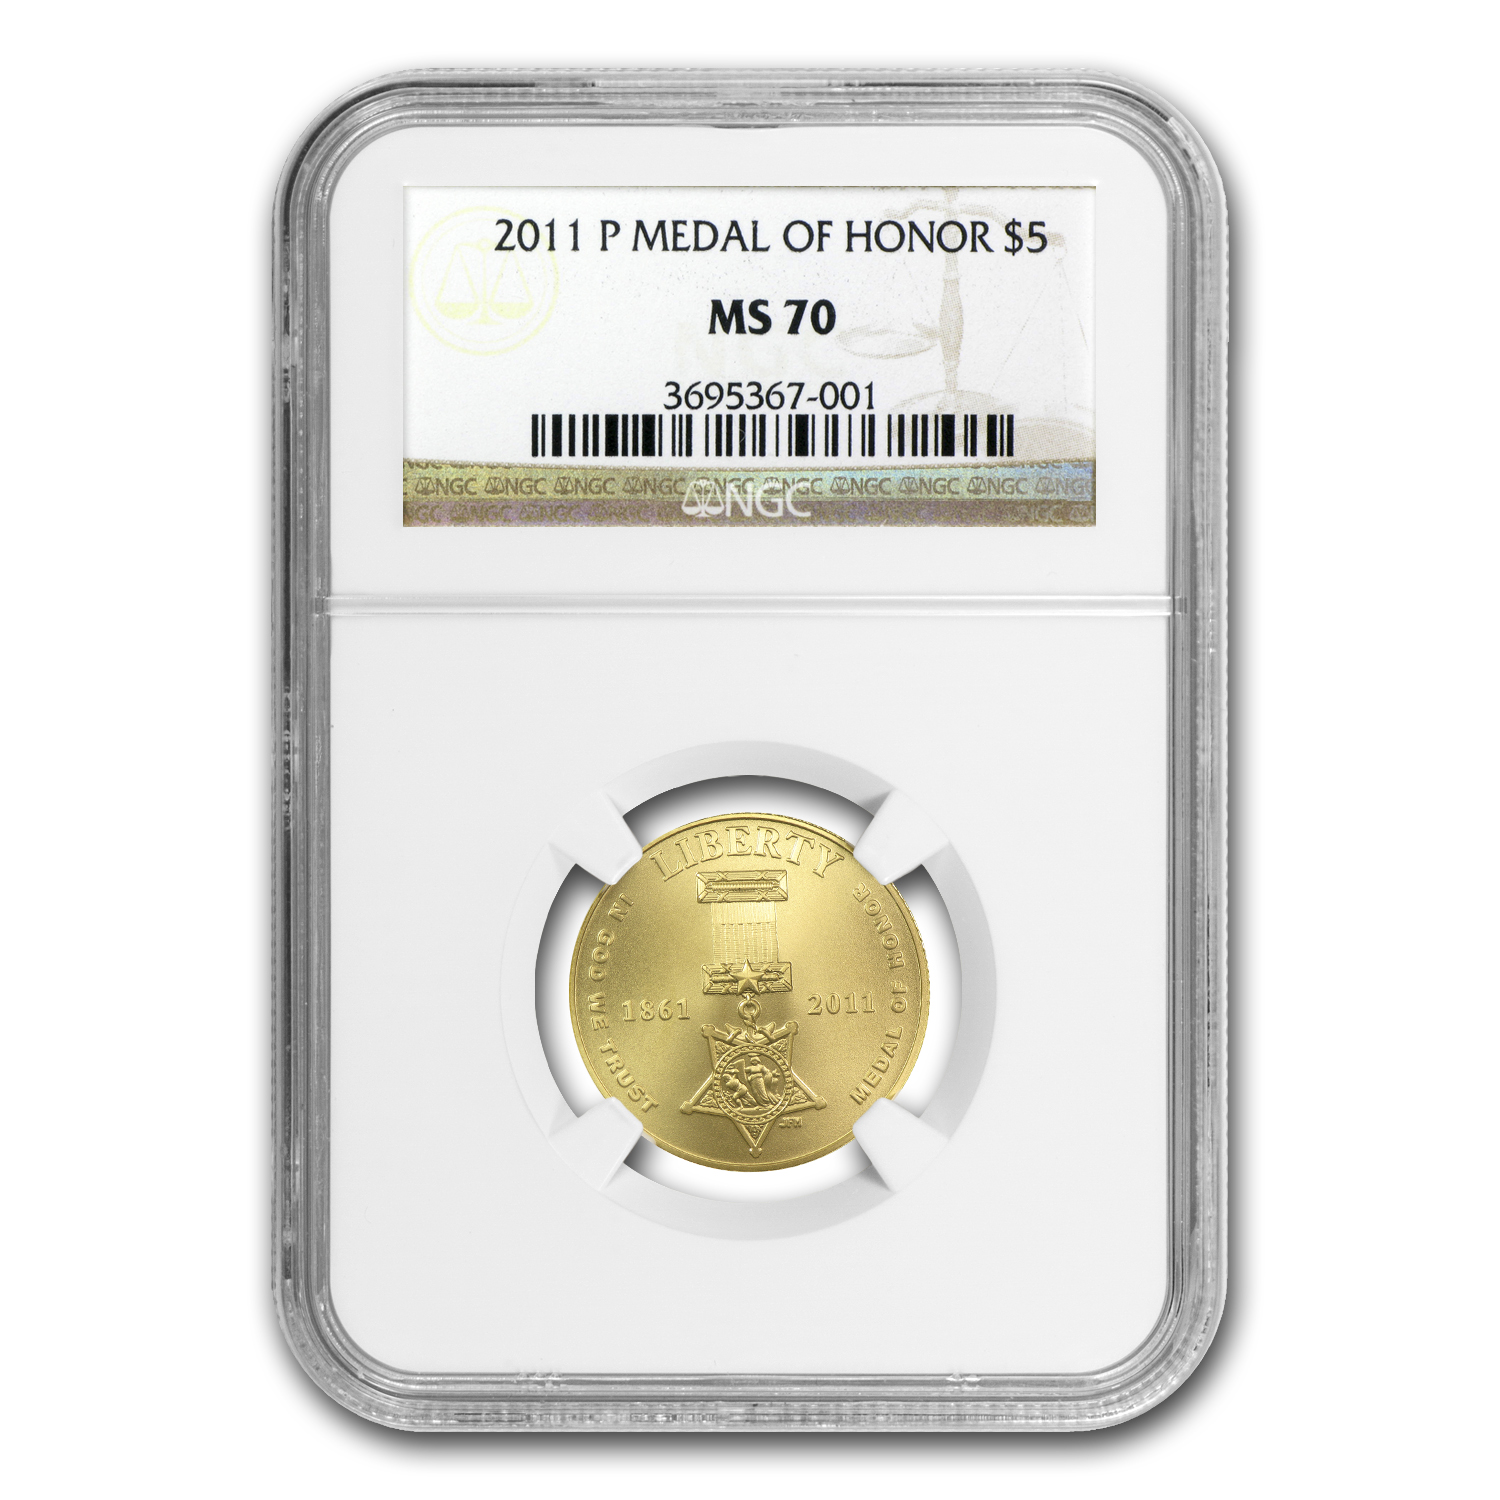 2011-P Medal of Honor - $5 Gold Commemorative - MS-70 NGC